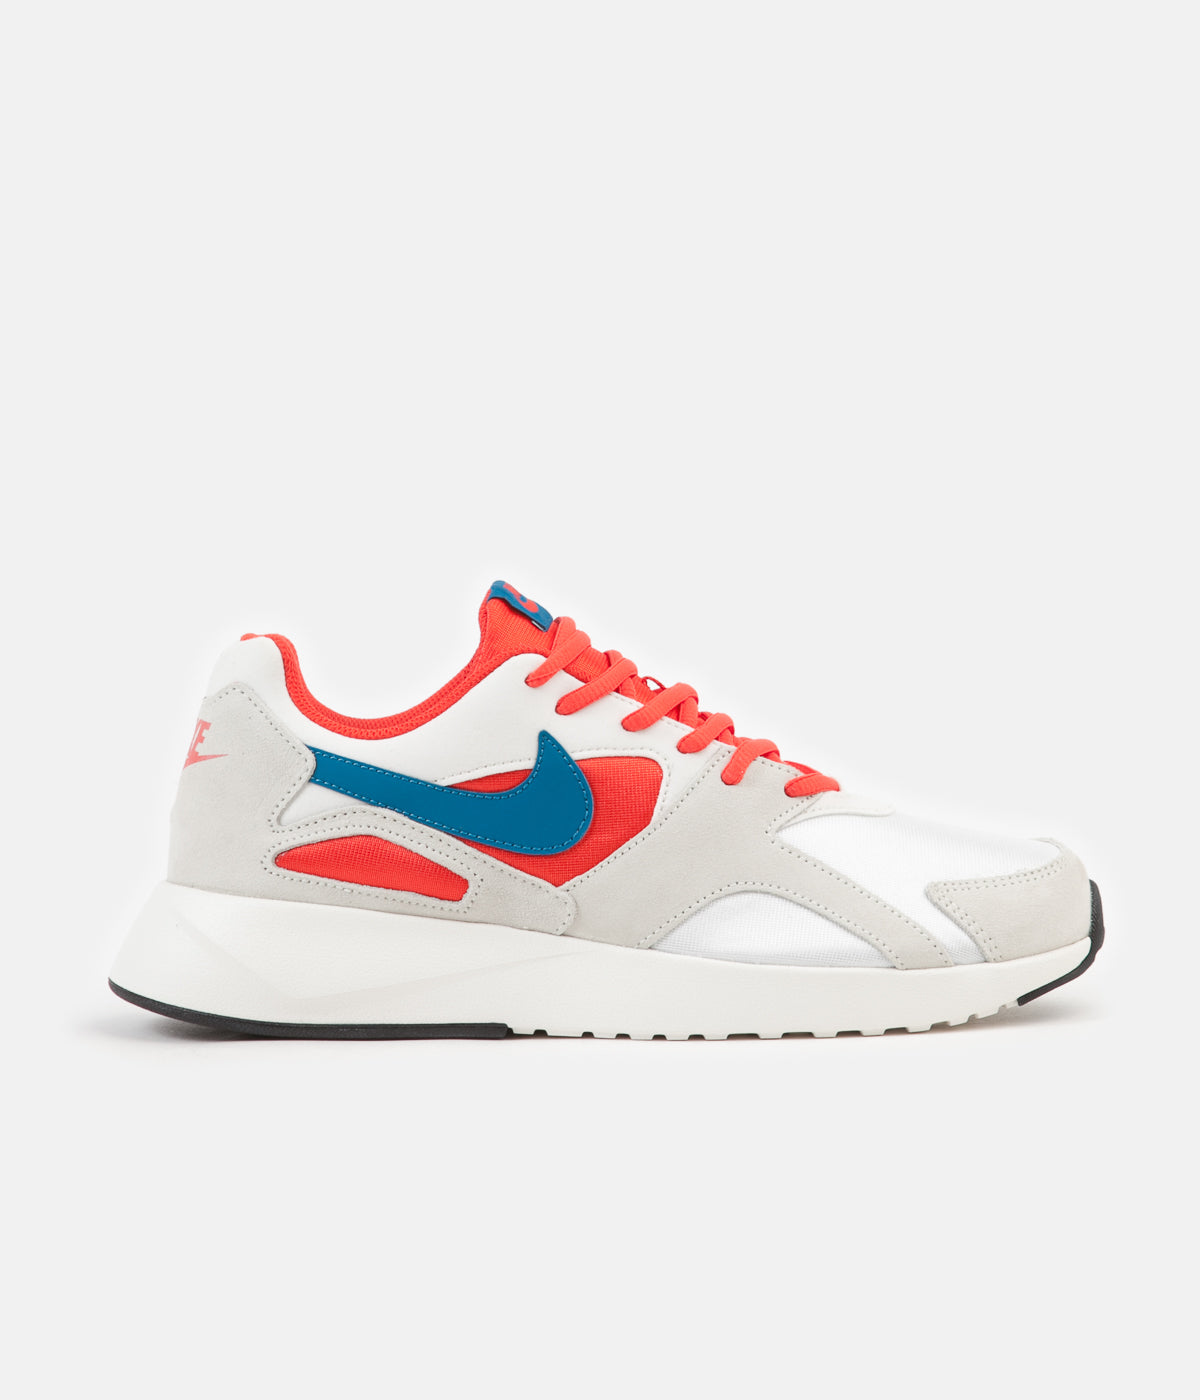 quality design 8fb76 11248 ... Nike Pantheos Shoes - Summit White   Green Abyss - Habanero Red ...